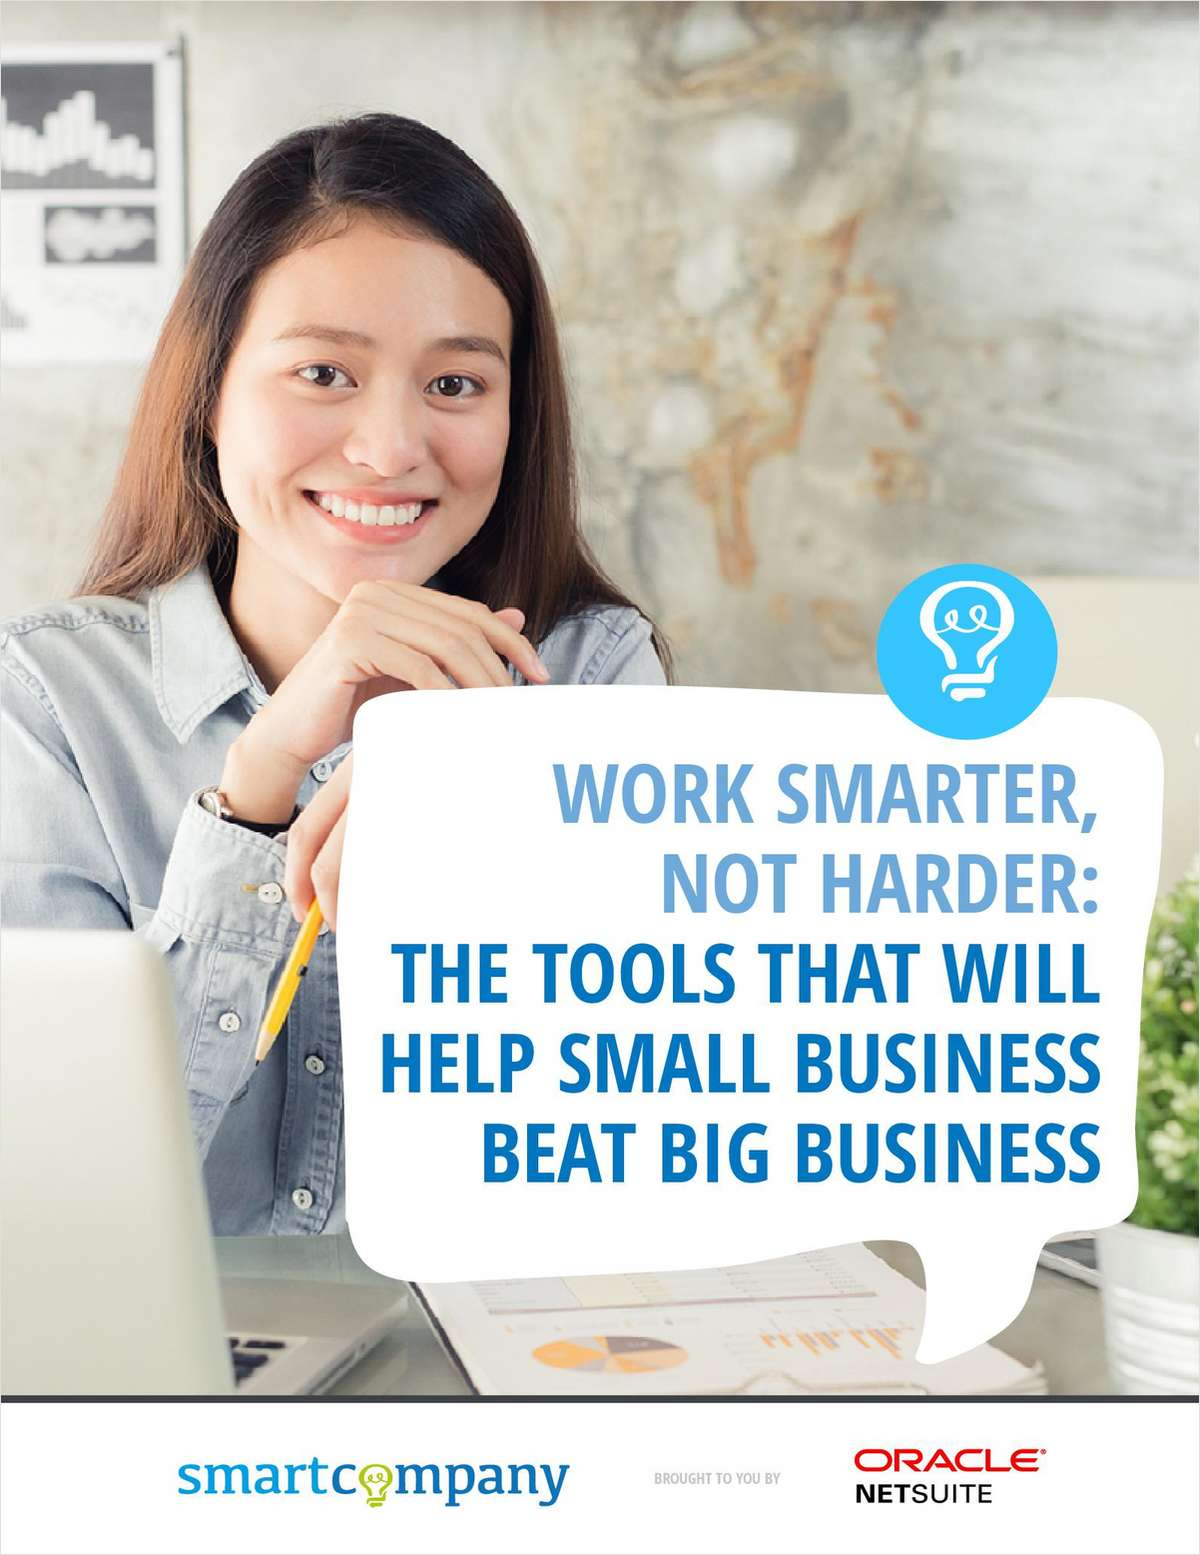 The Tools That Will Help Small Business Beat Big Business